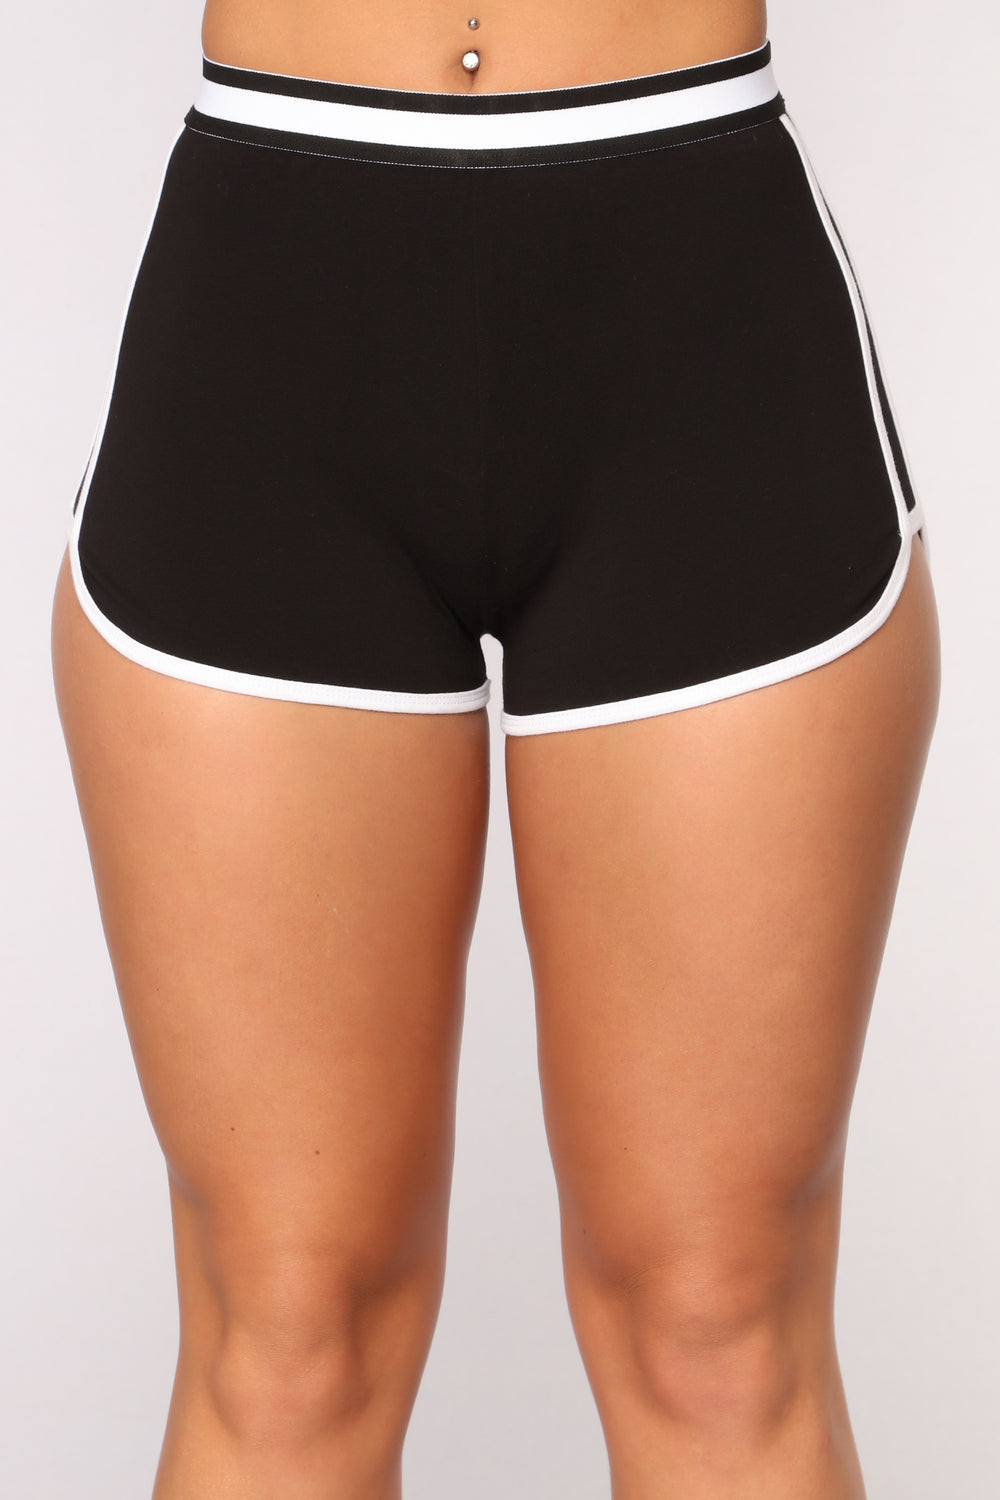 Let's Race Shorts - Black